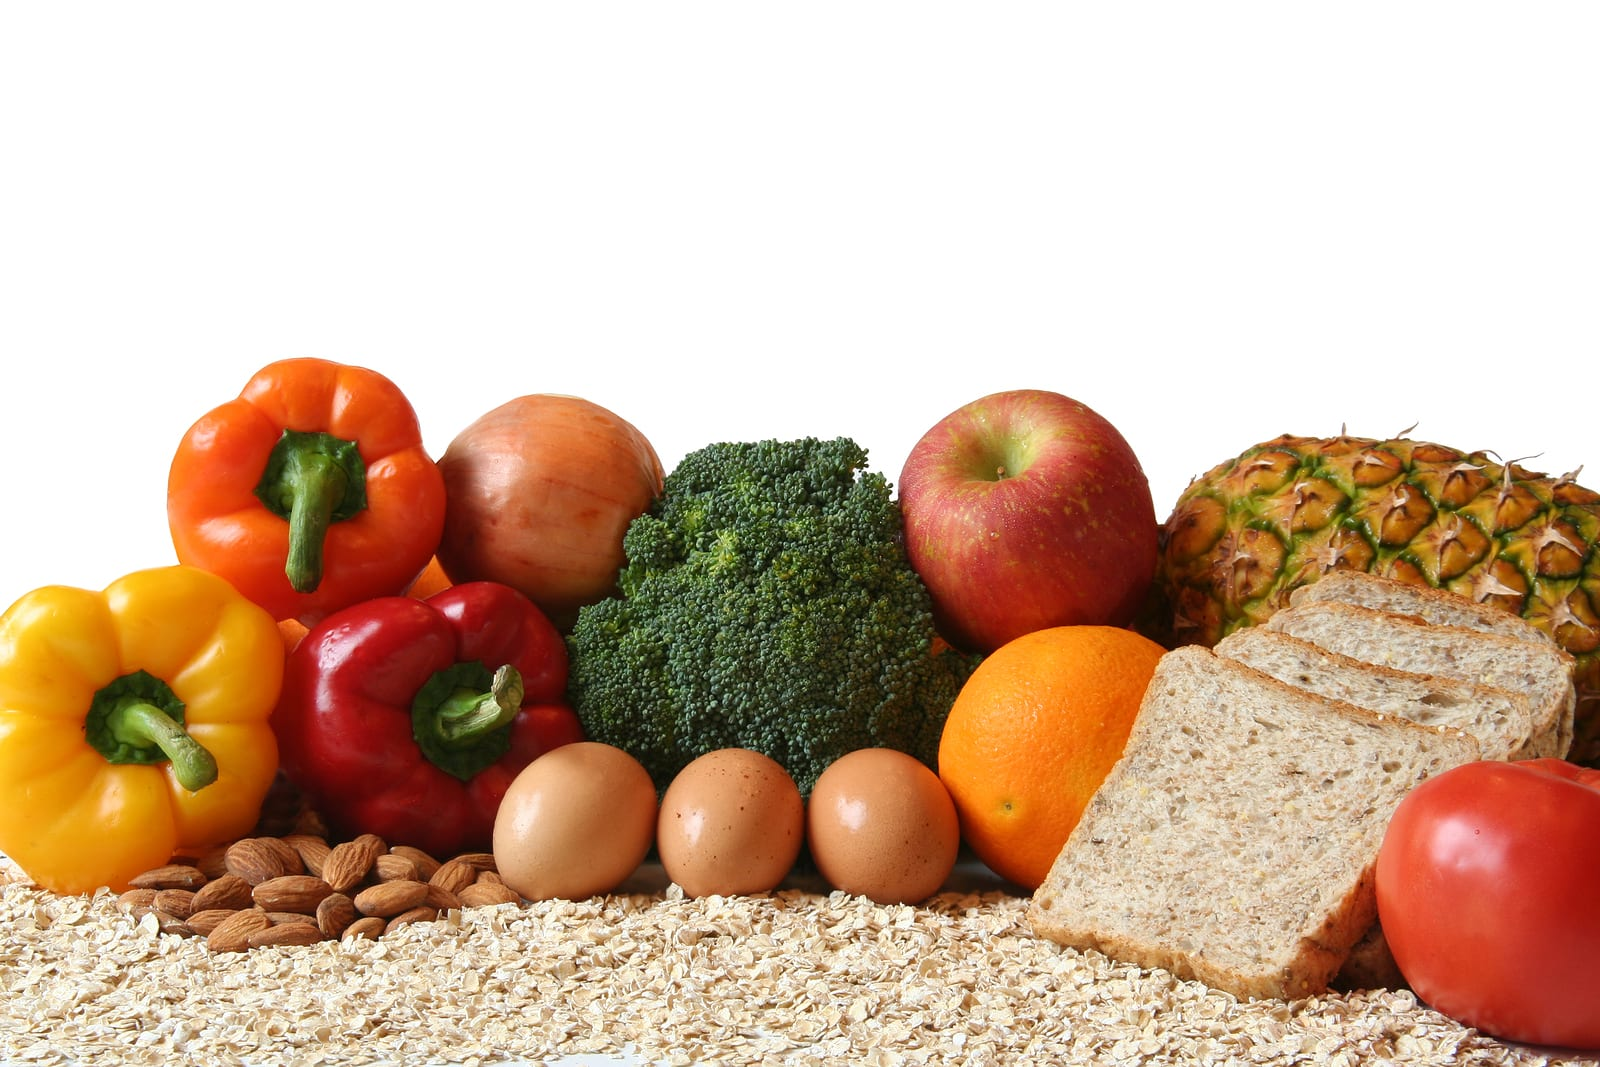 variety of fresh healthy foods fruits vegetables whole grains and dairy.